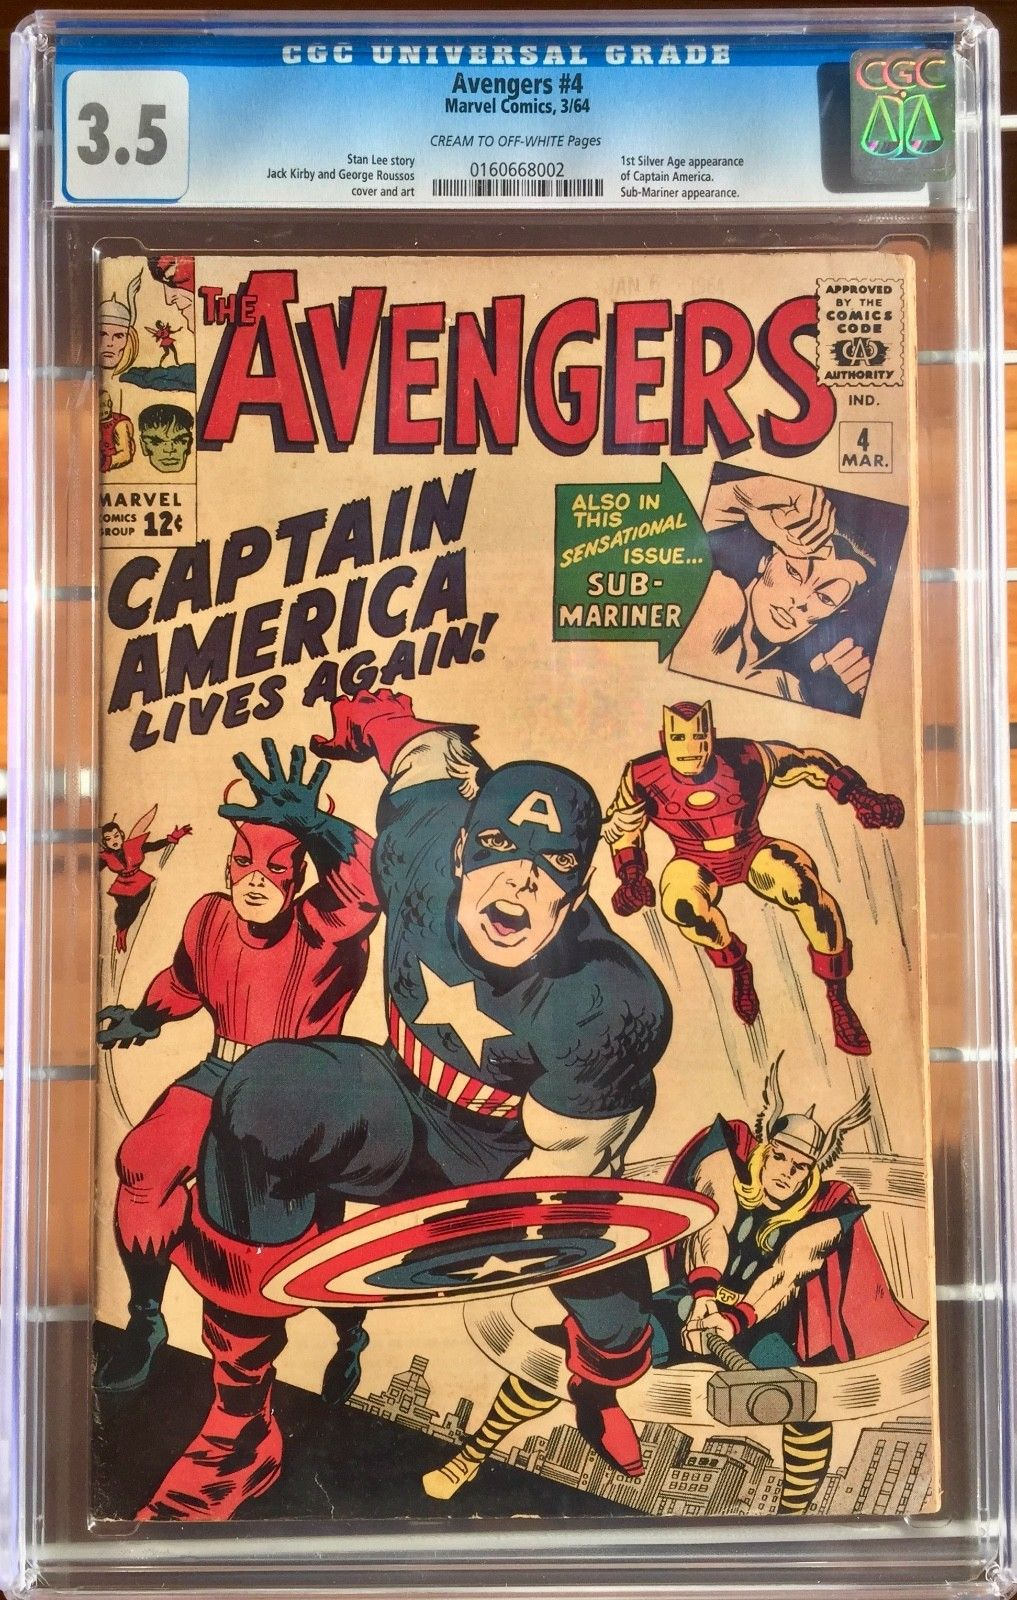 Avengers 4 CGC 3.5 1st Silver Age appearance of Capt. America